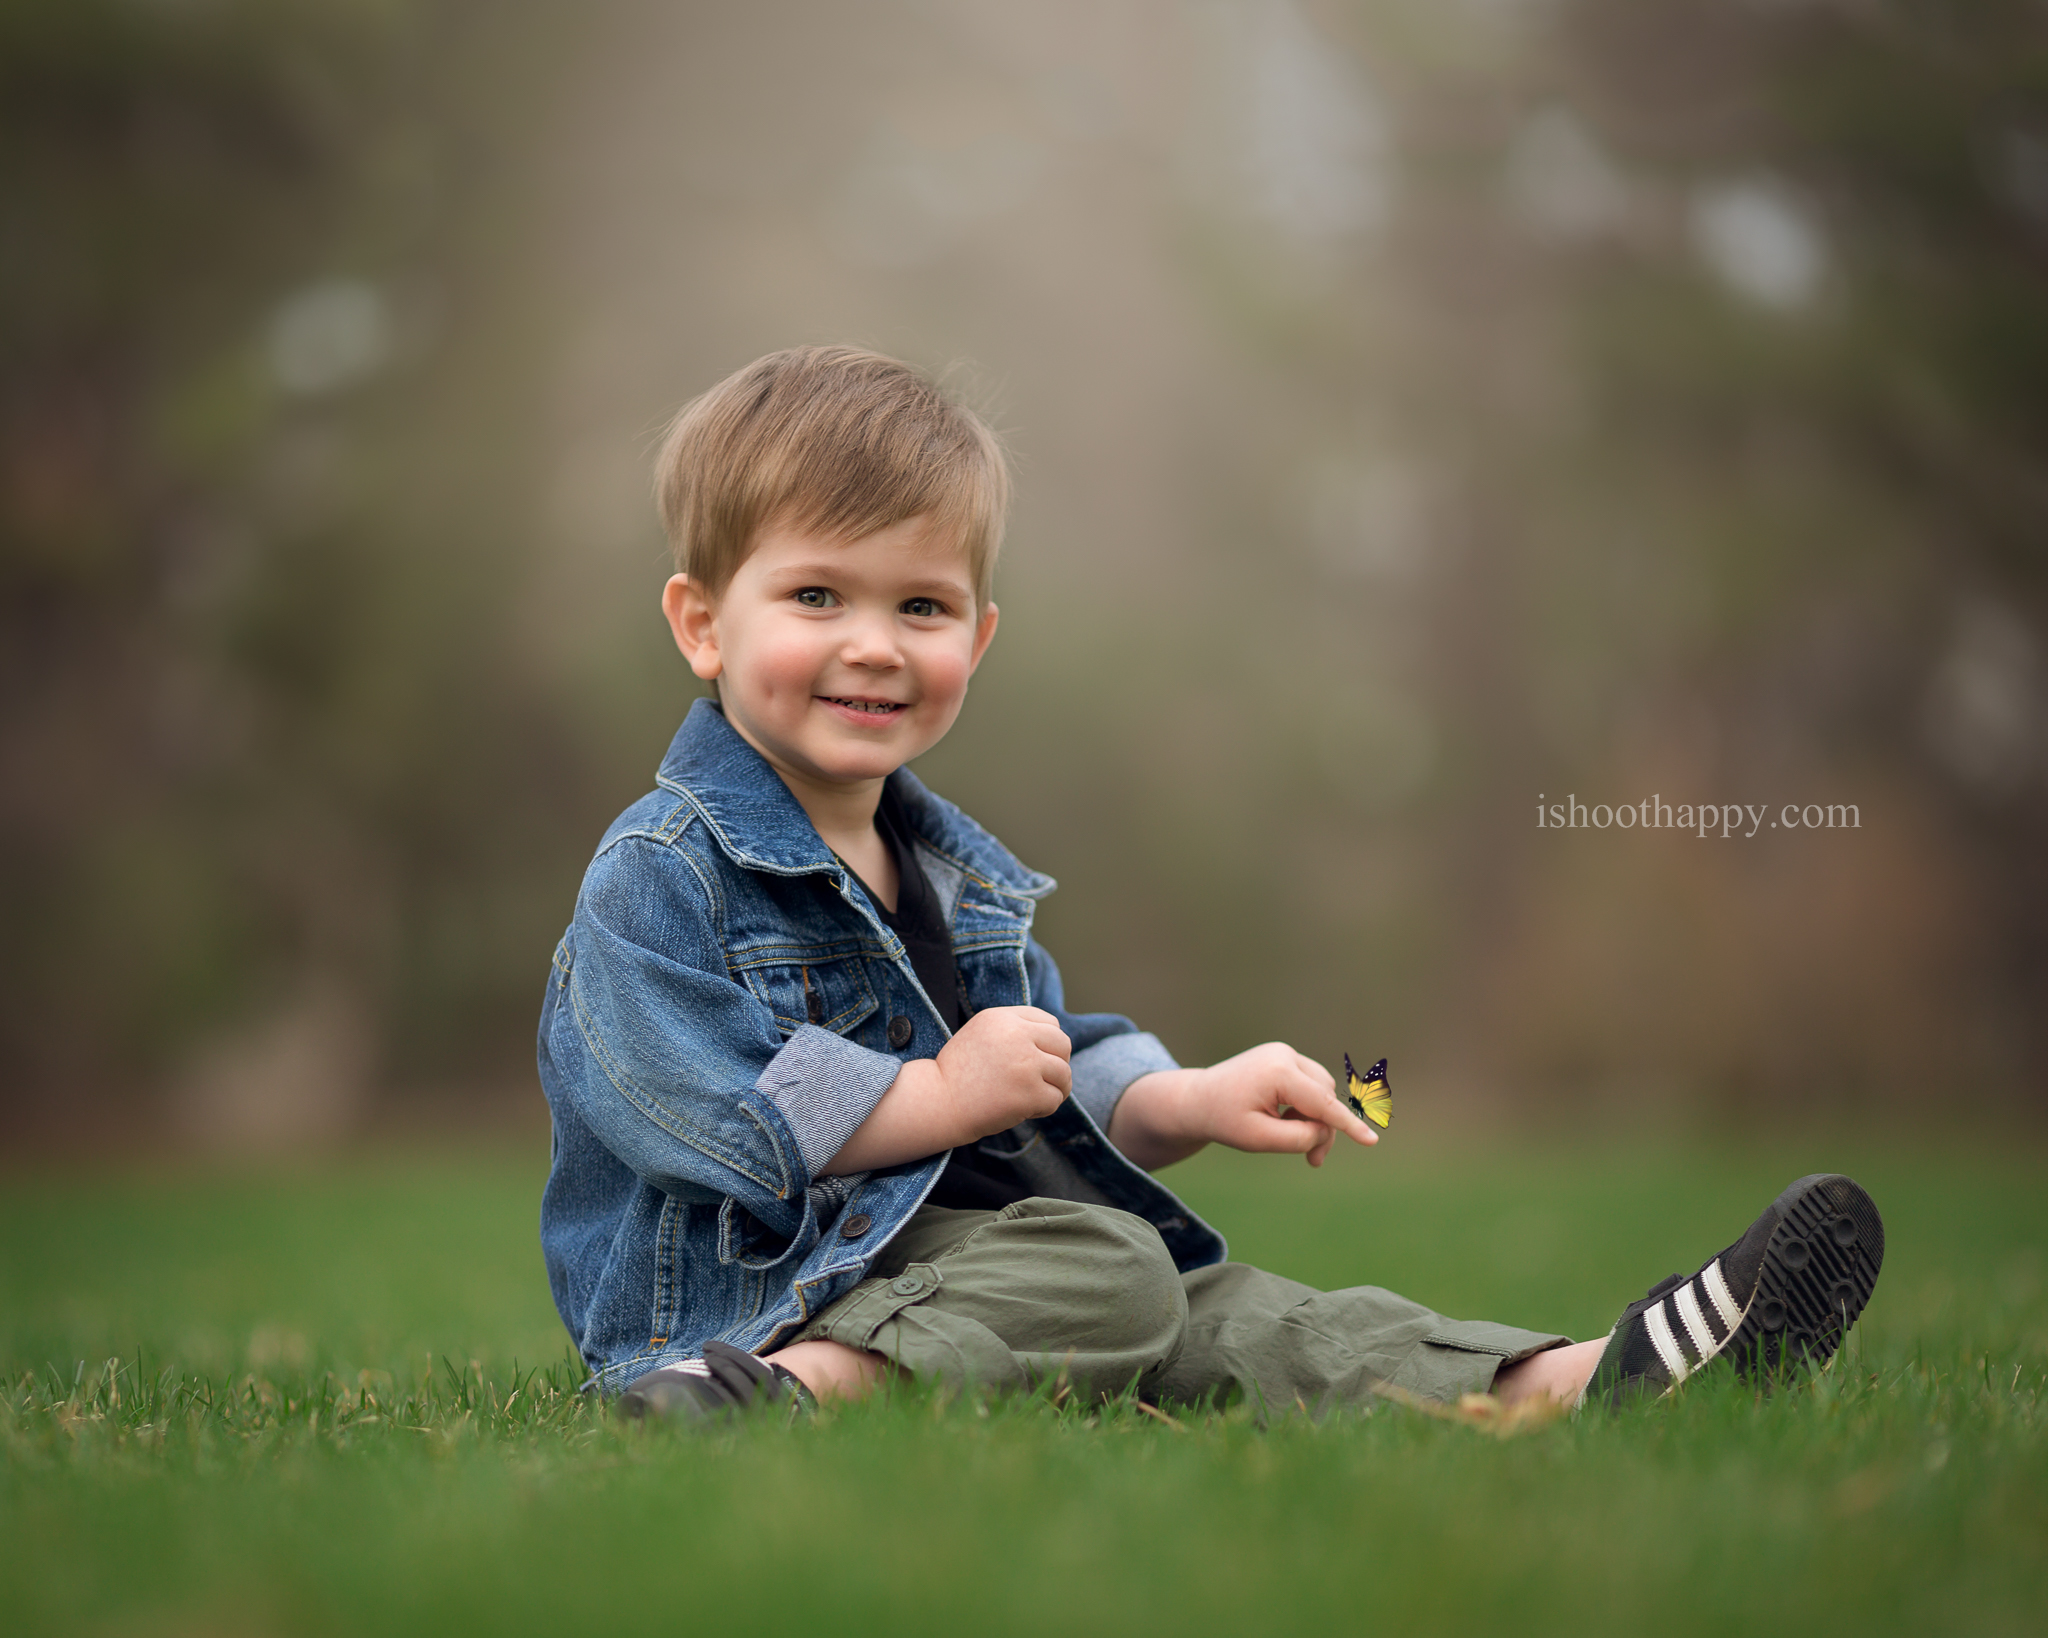 Denver Child Photography, Children Photo, Denver Kids Photographer, Best Children Photographer in Denver, Colorado Children Photography, Cute Child Photo, Kids Photos, Baby Boy, Todder, Denver Photographer, Colorado Photography